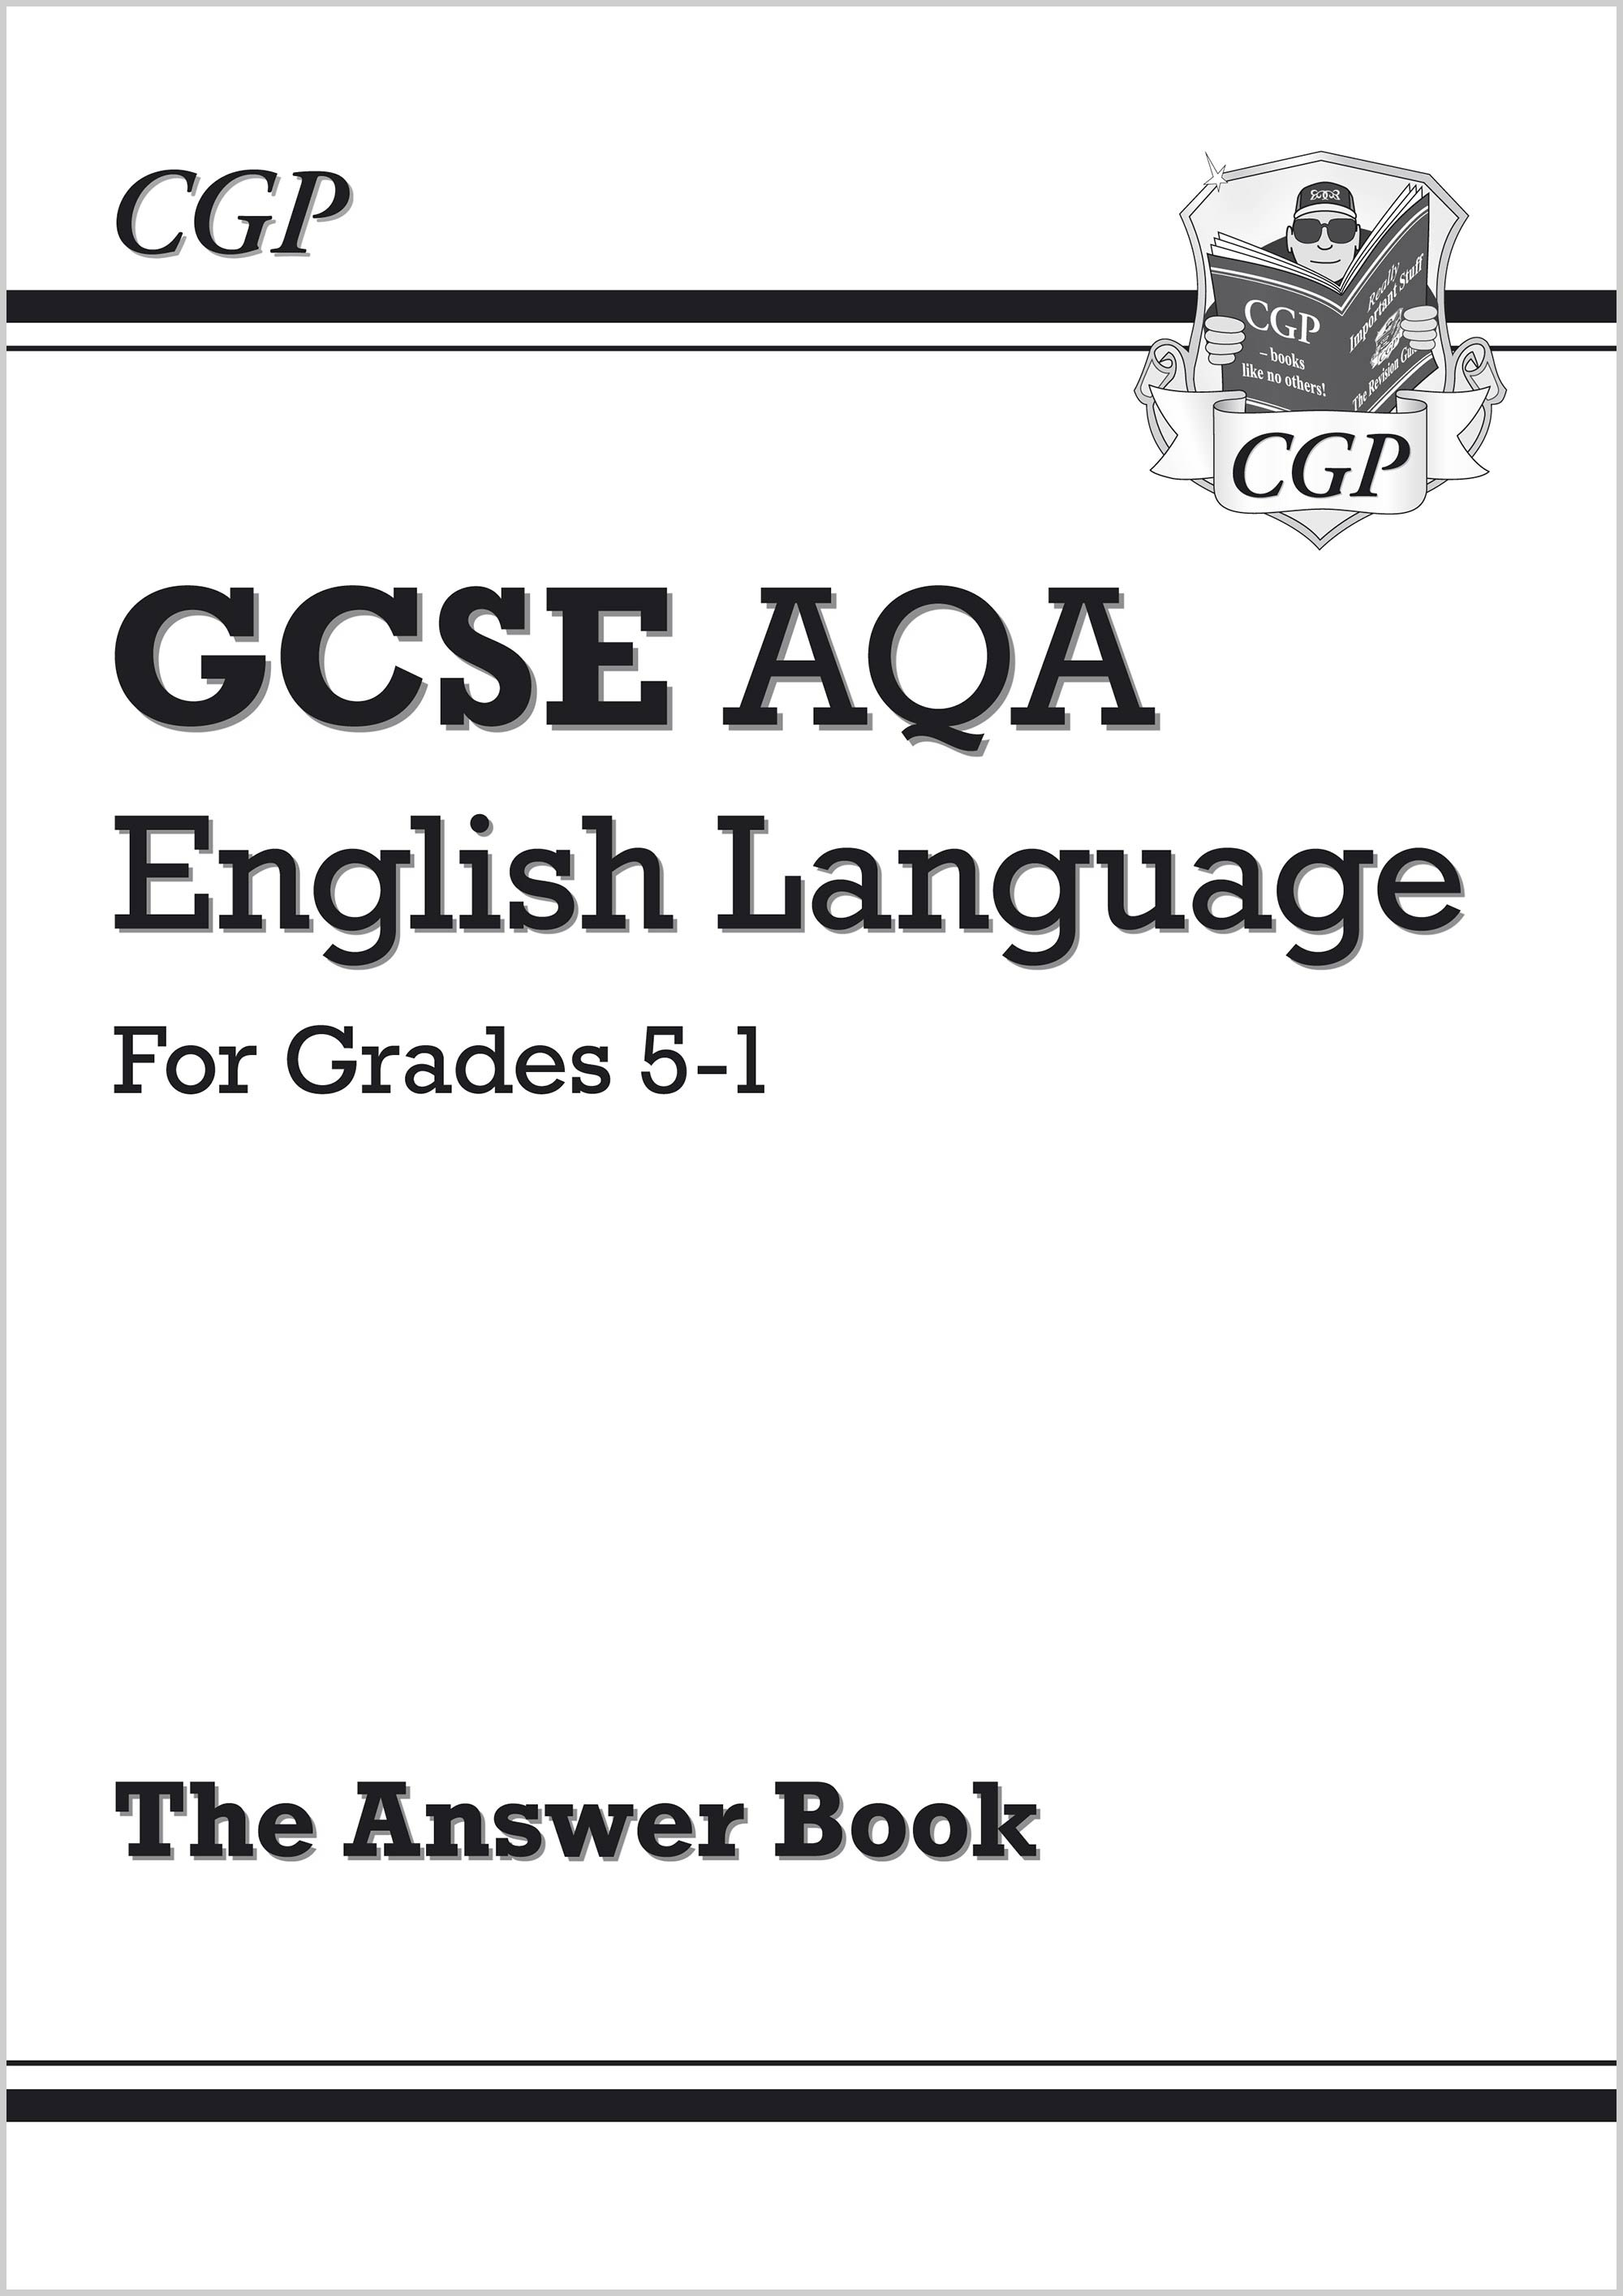 ENAFA41 - GCSE English Language AQA Answers for Study & Exam Practice: Grades 5-1